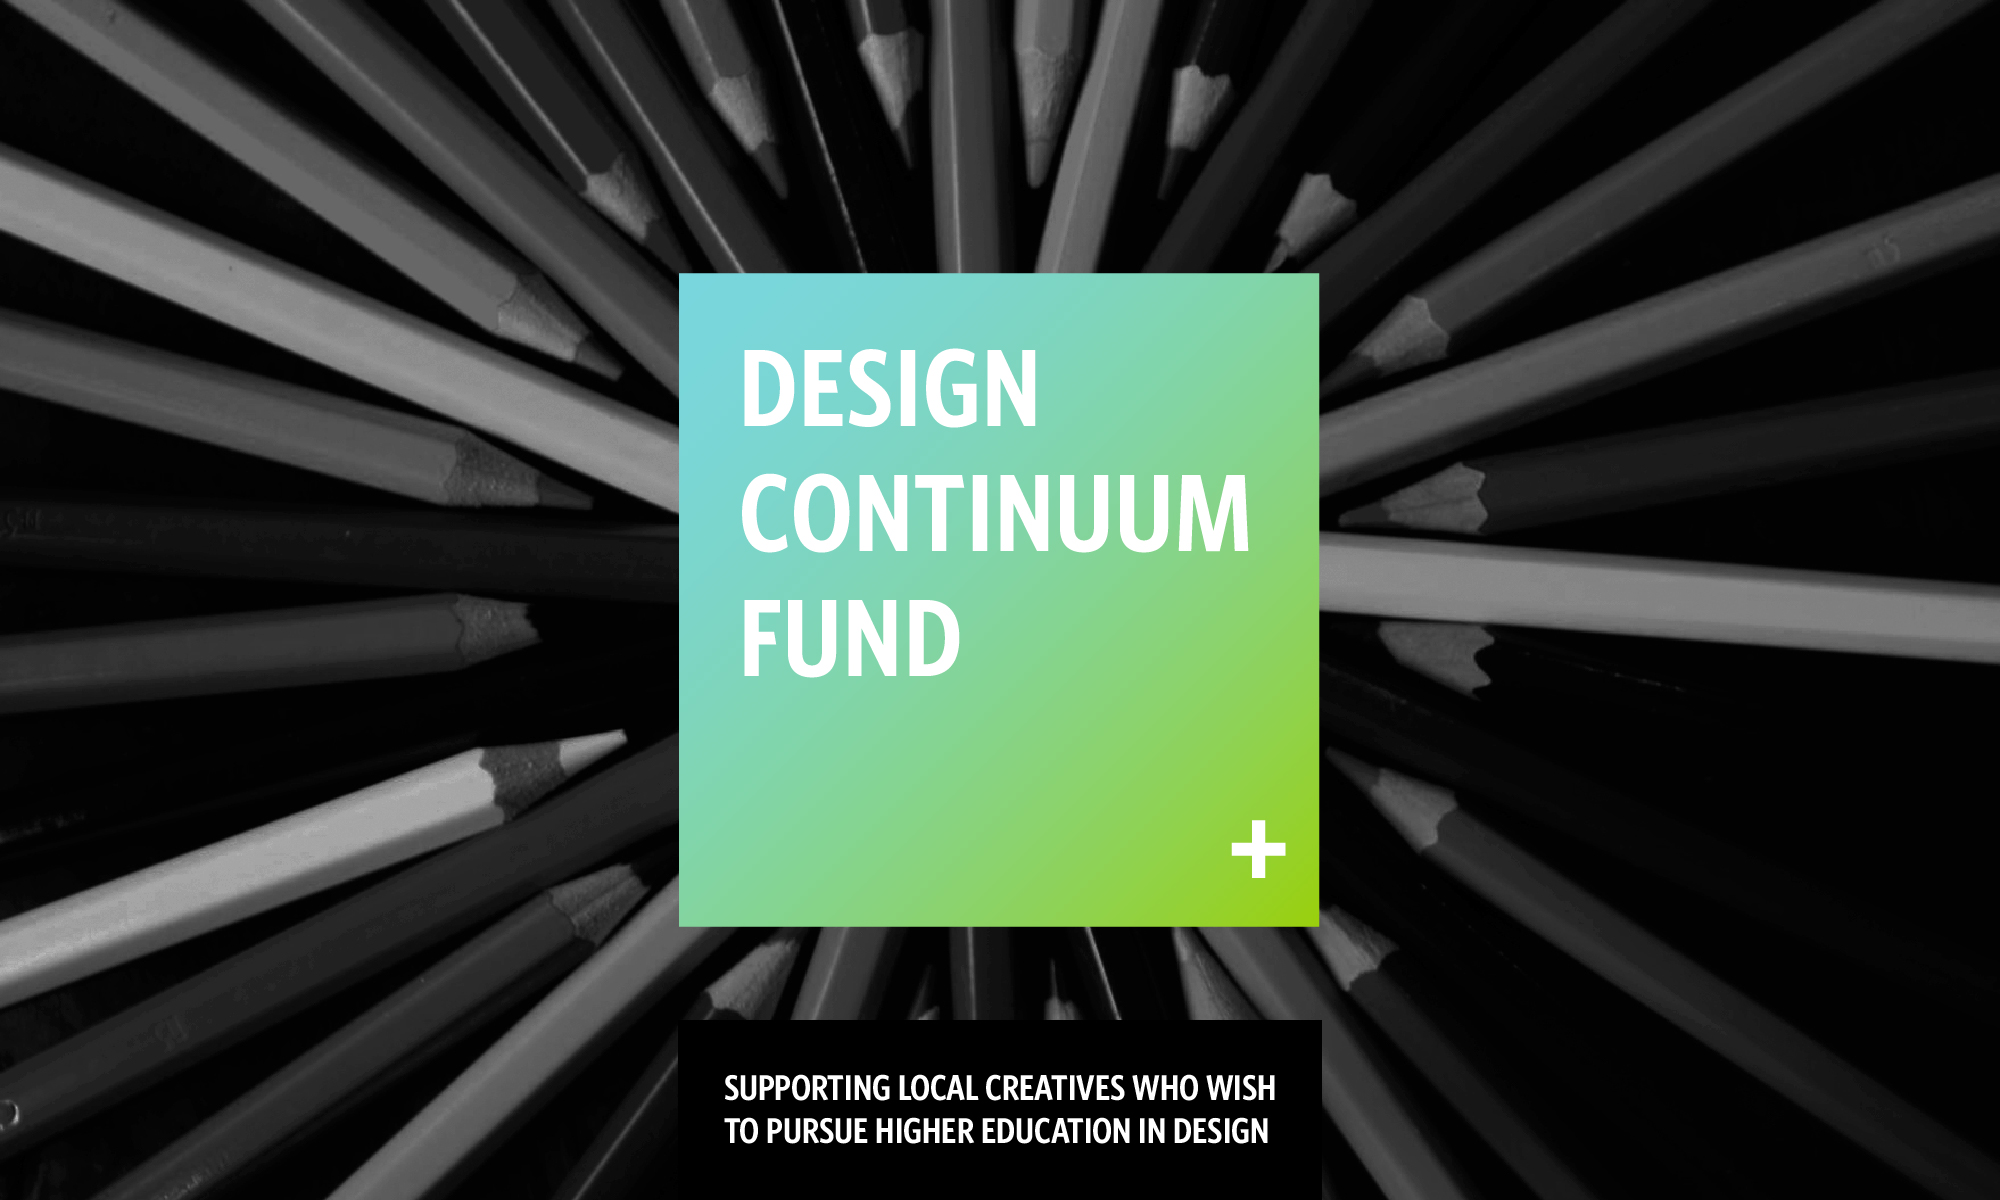 Design Continuum Fund